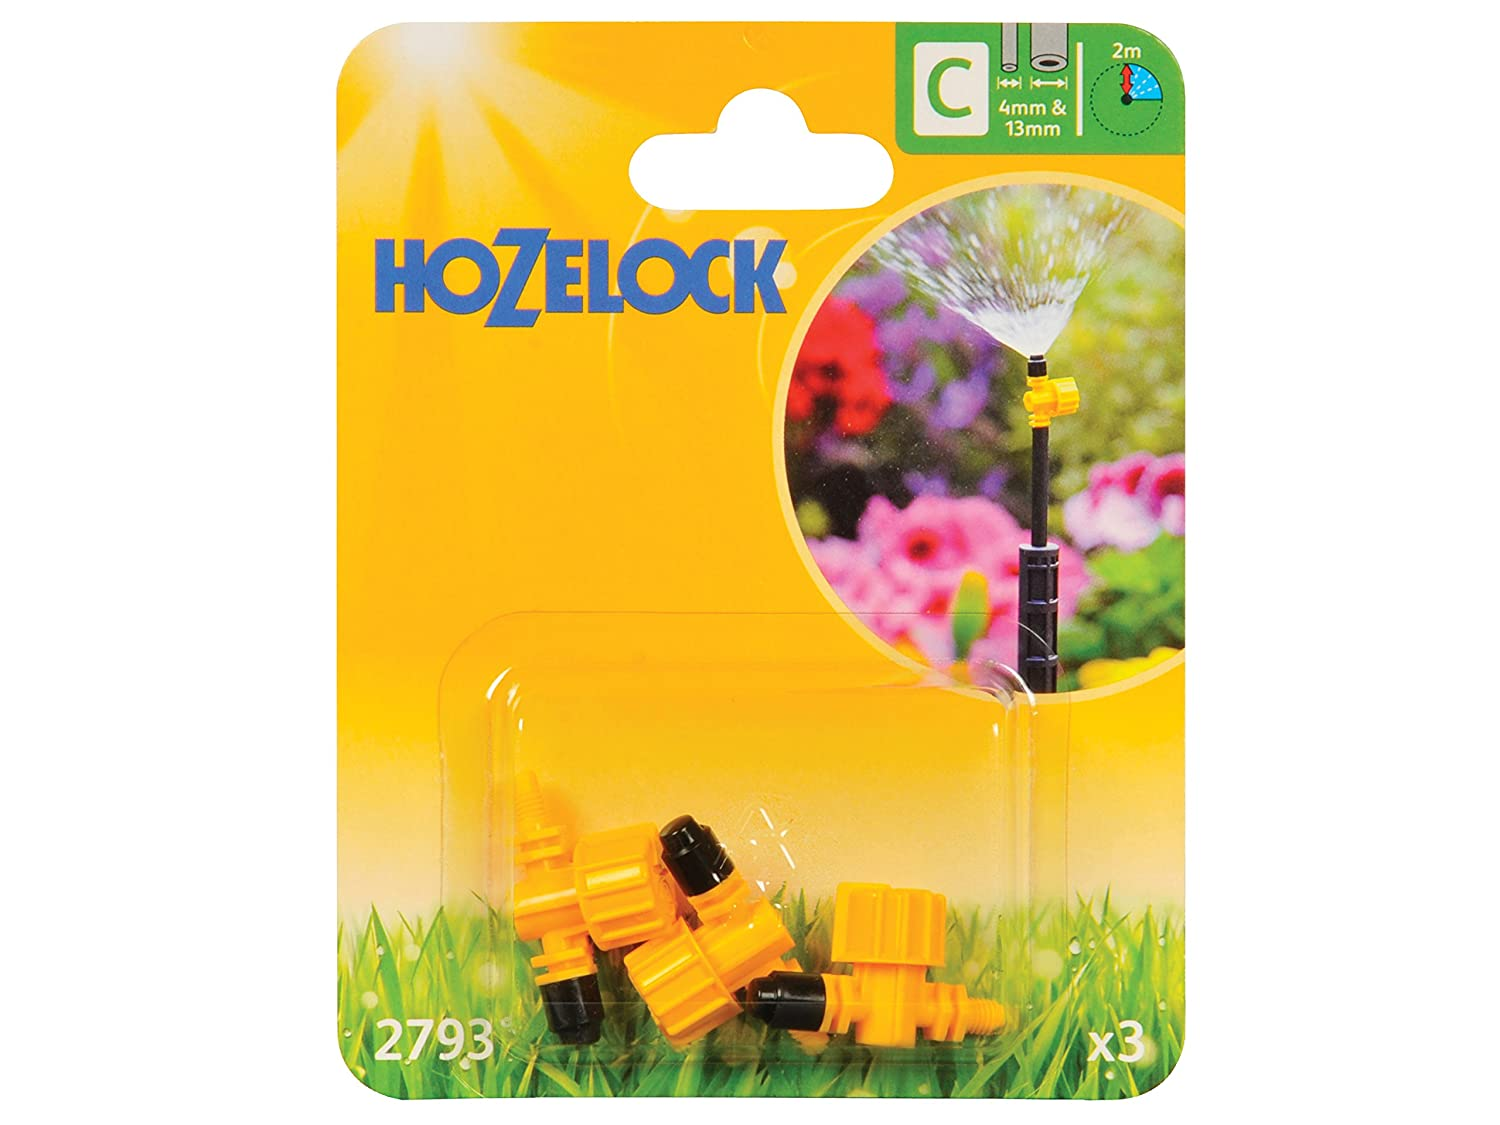 Hozelock 4/13 mm 90 Degree Adjustable Micro Jet (Pack of 3) 2793P0000